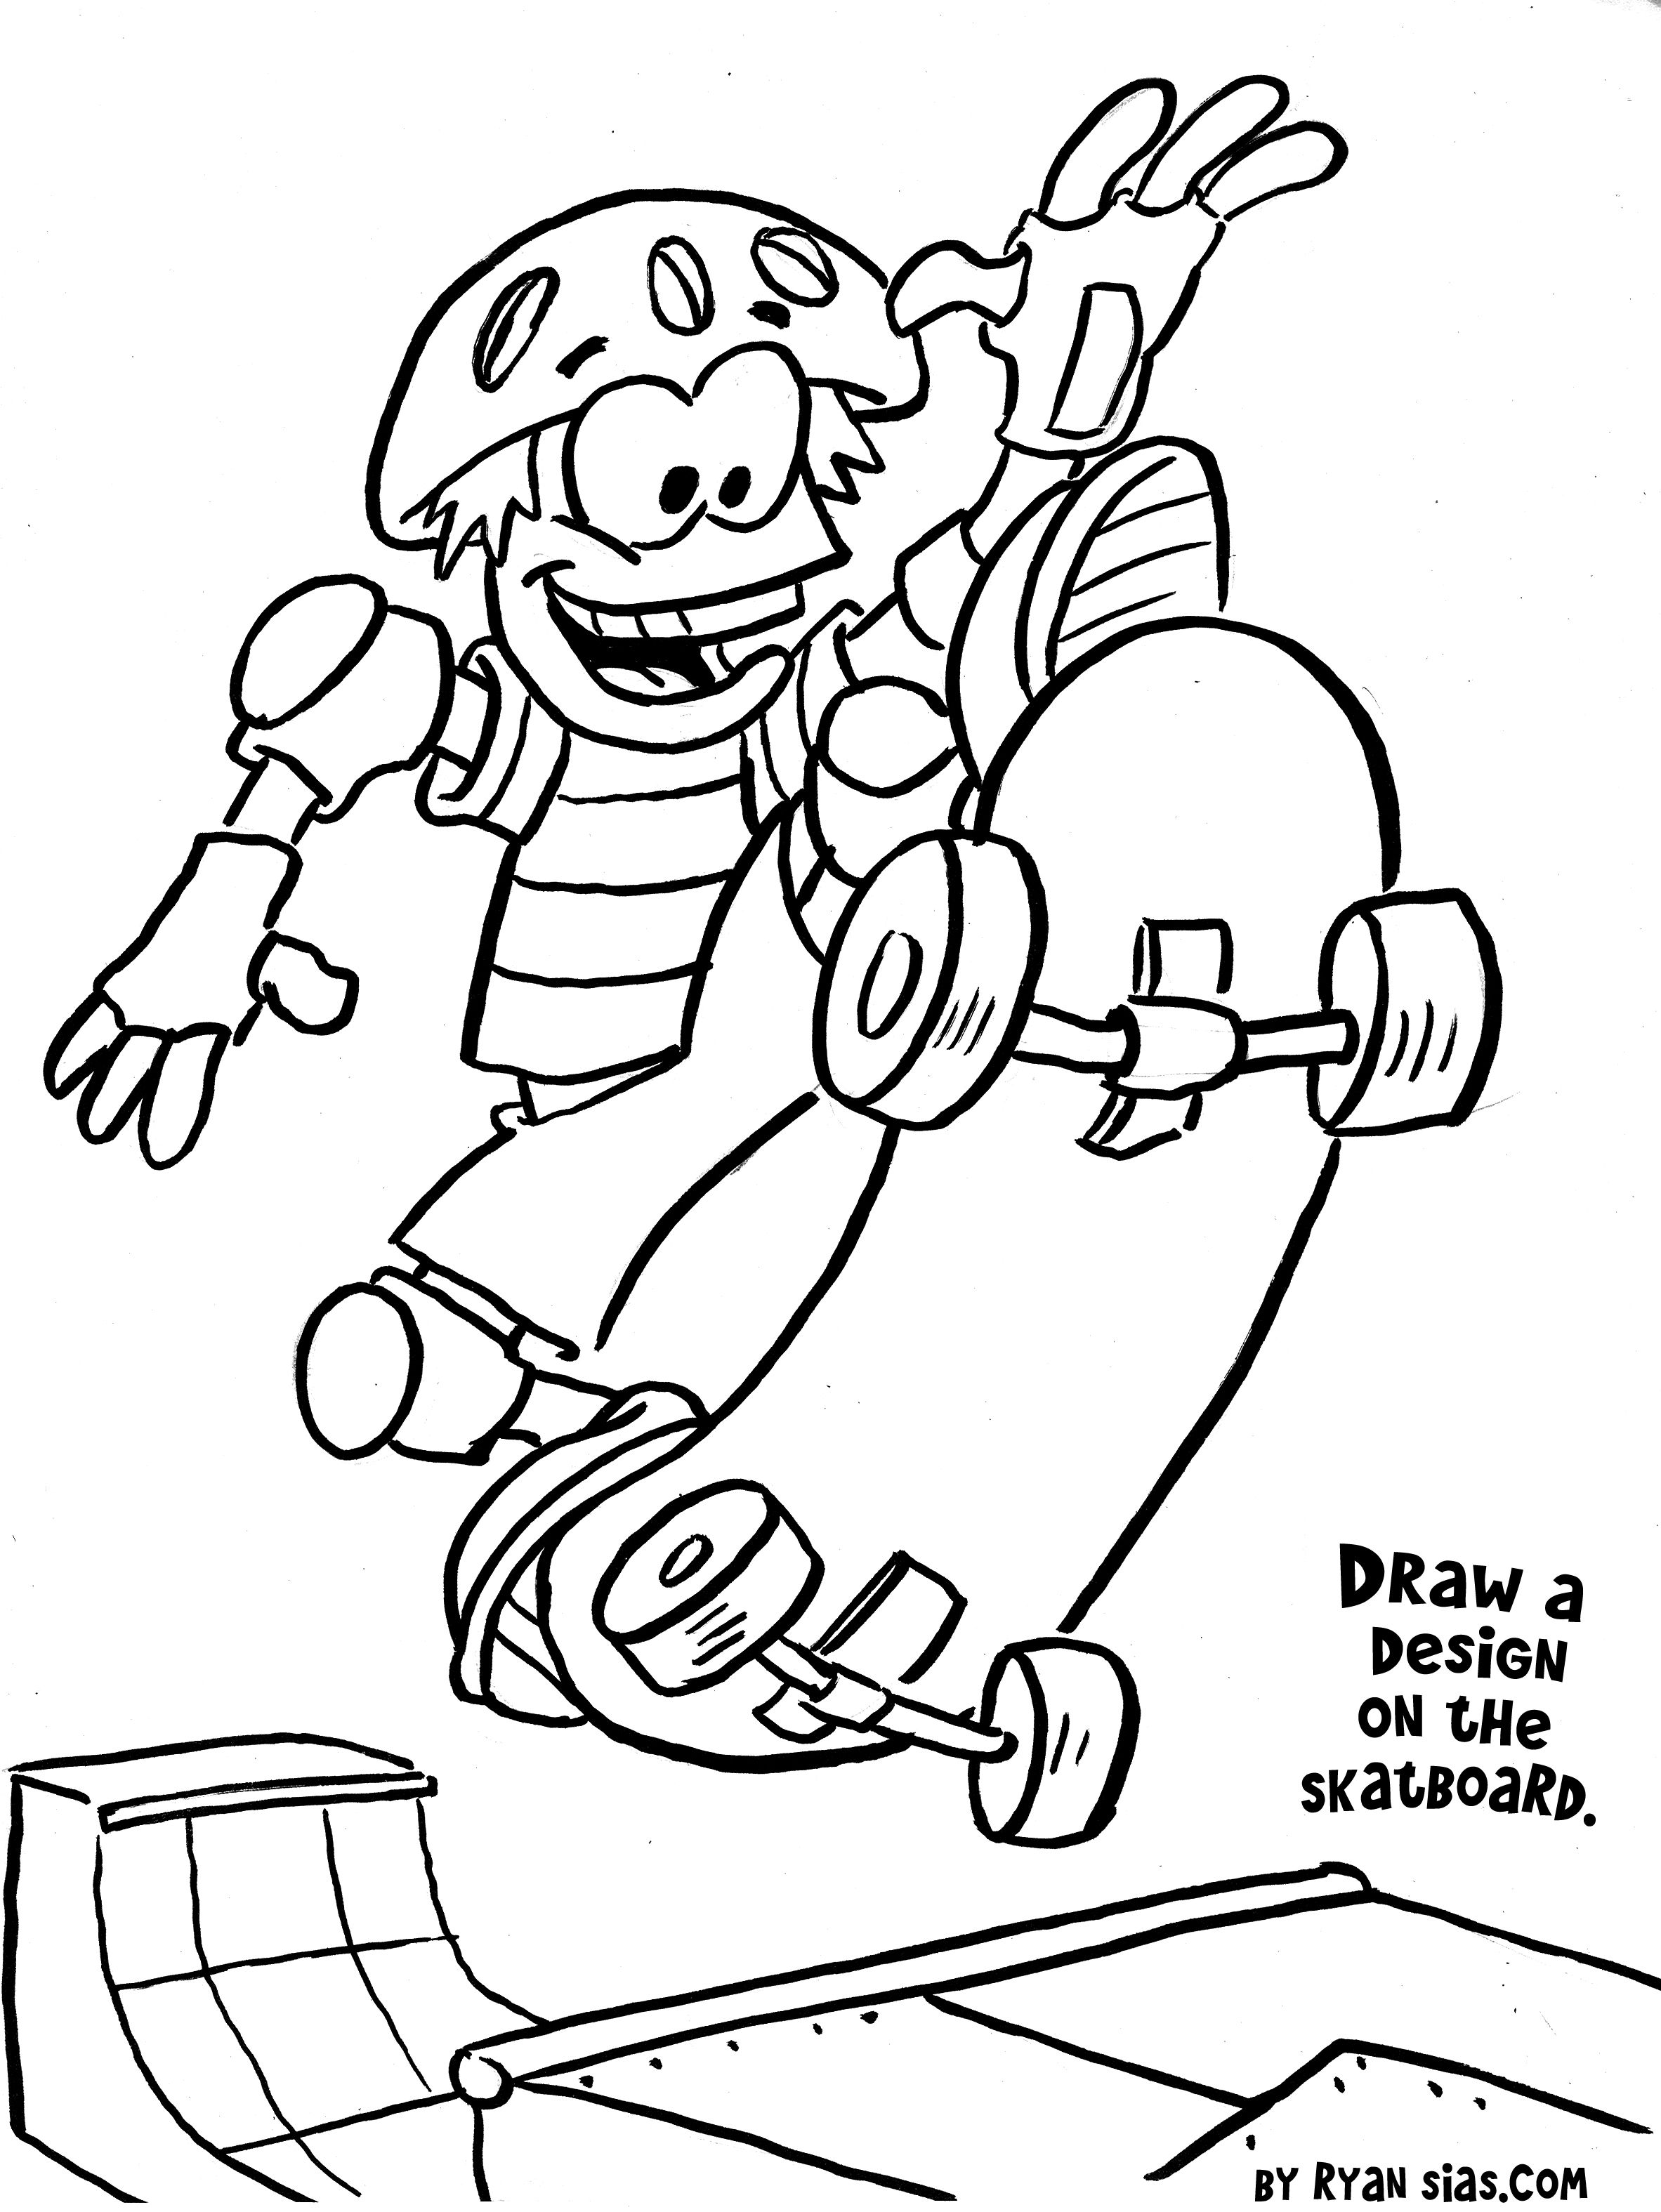 Wallace And Gromit Coloring Pages At Getcolorings